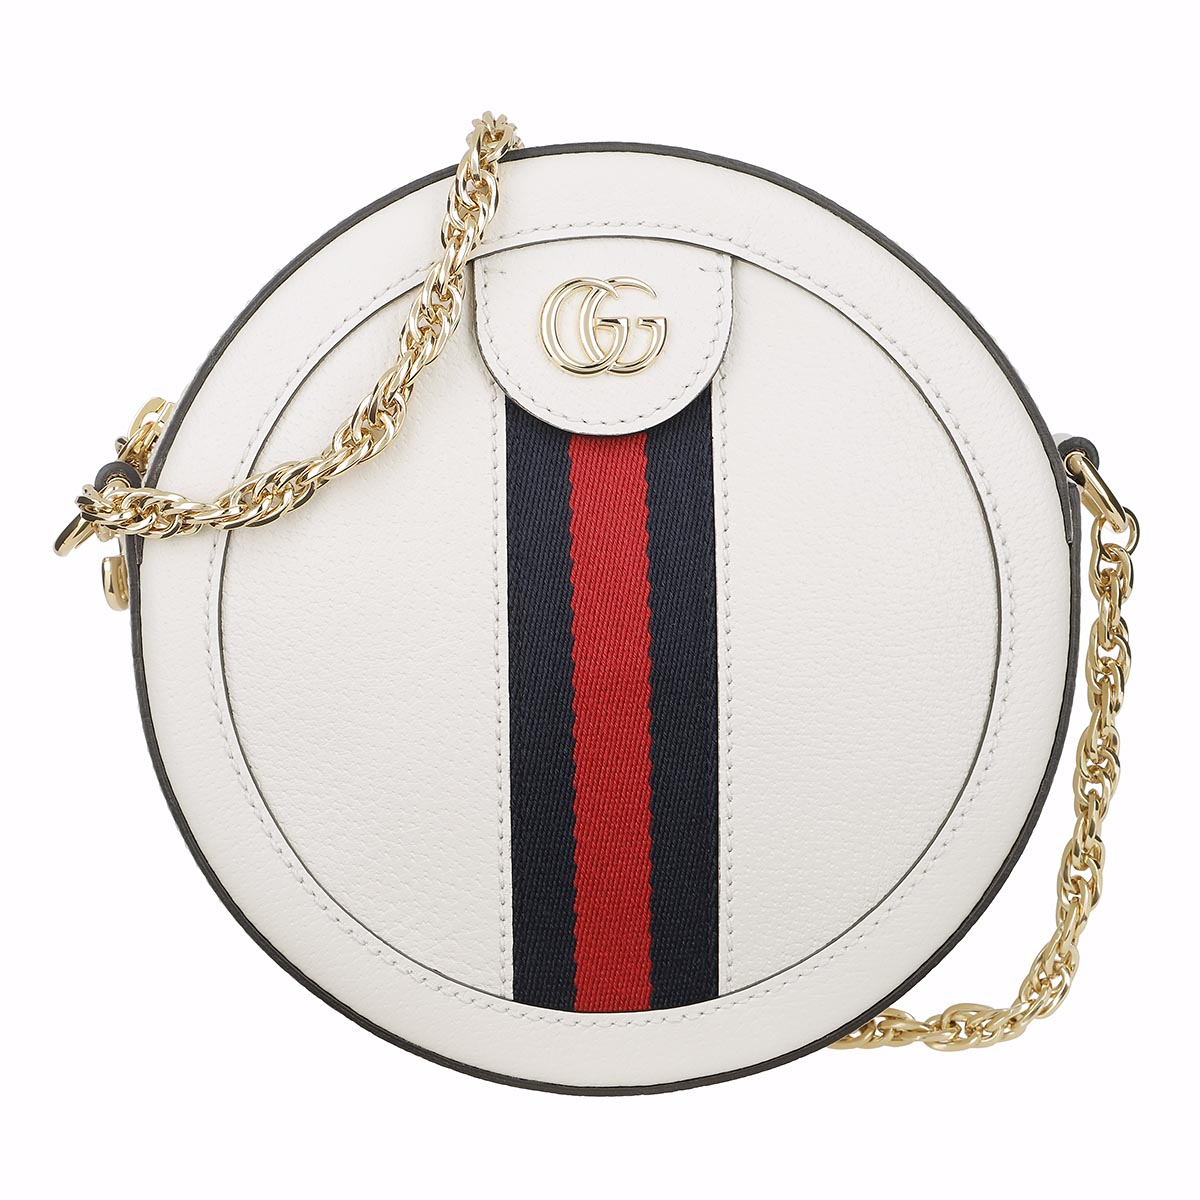 Gucci Umhängetasche - Ophidia Mini Round Shoulder Bag Leather White - in weiß - für Damen